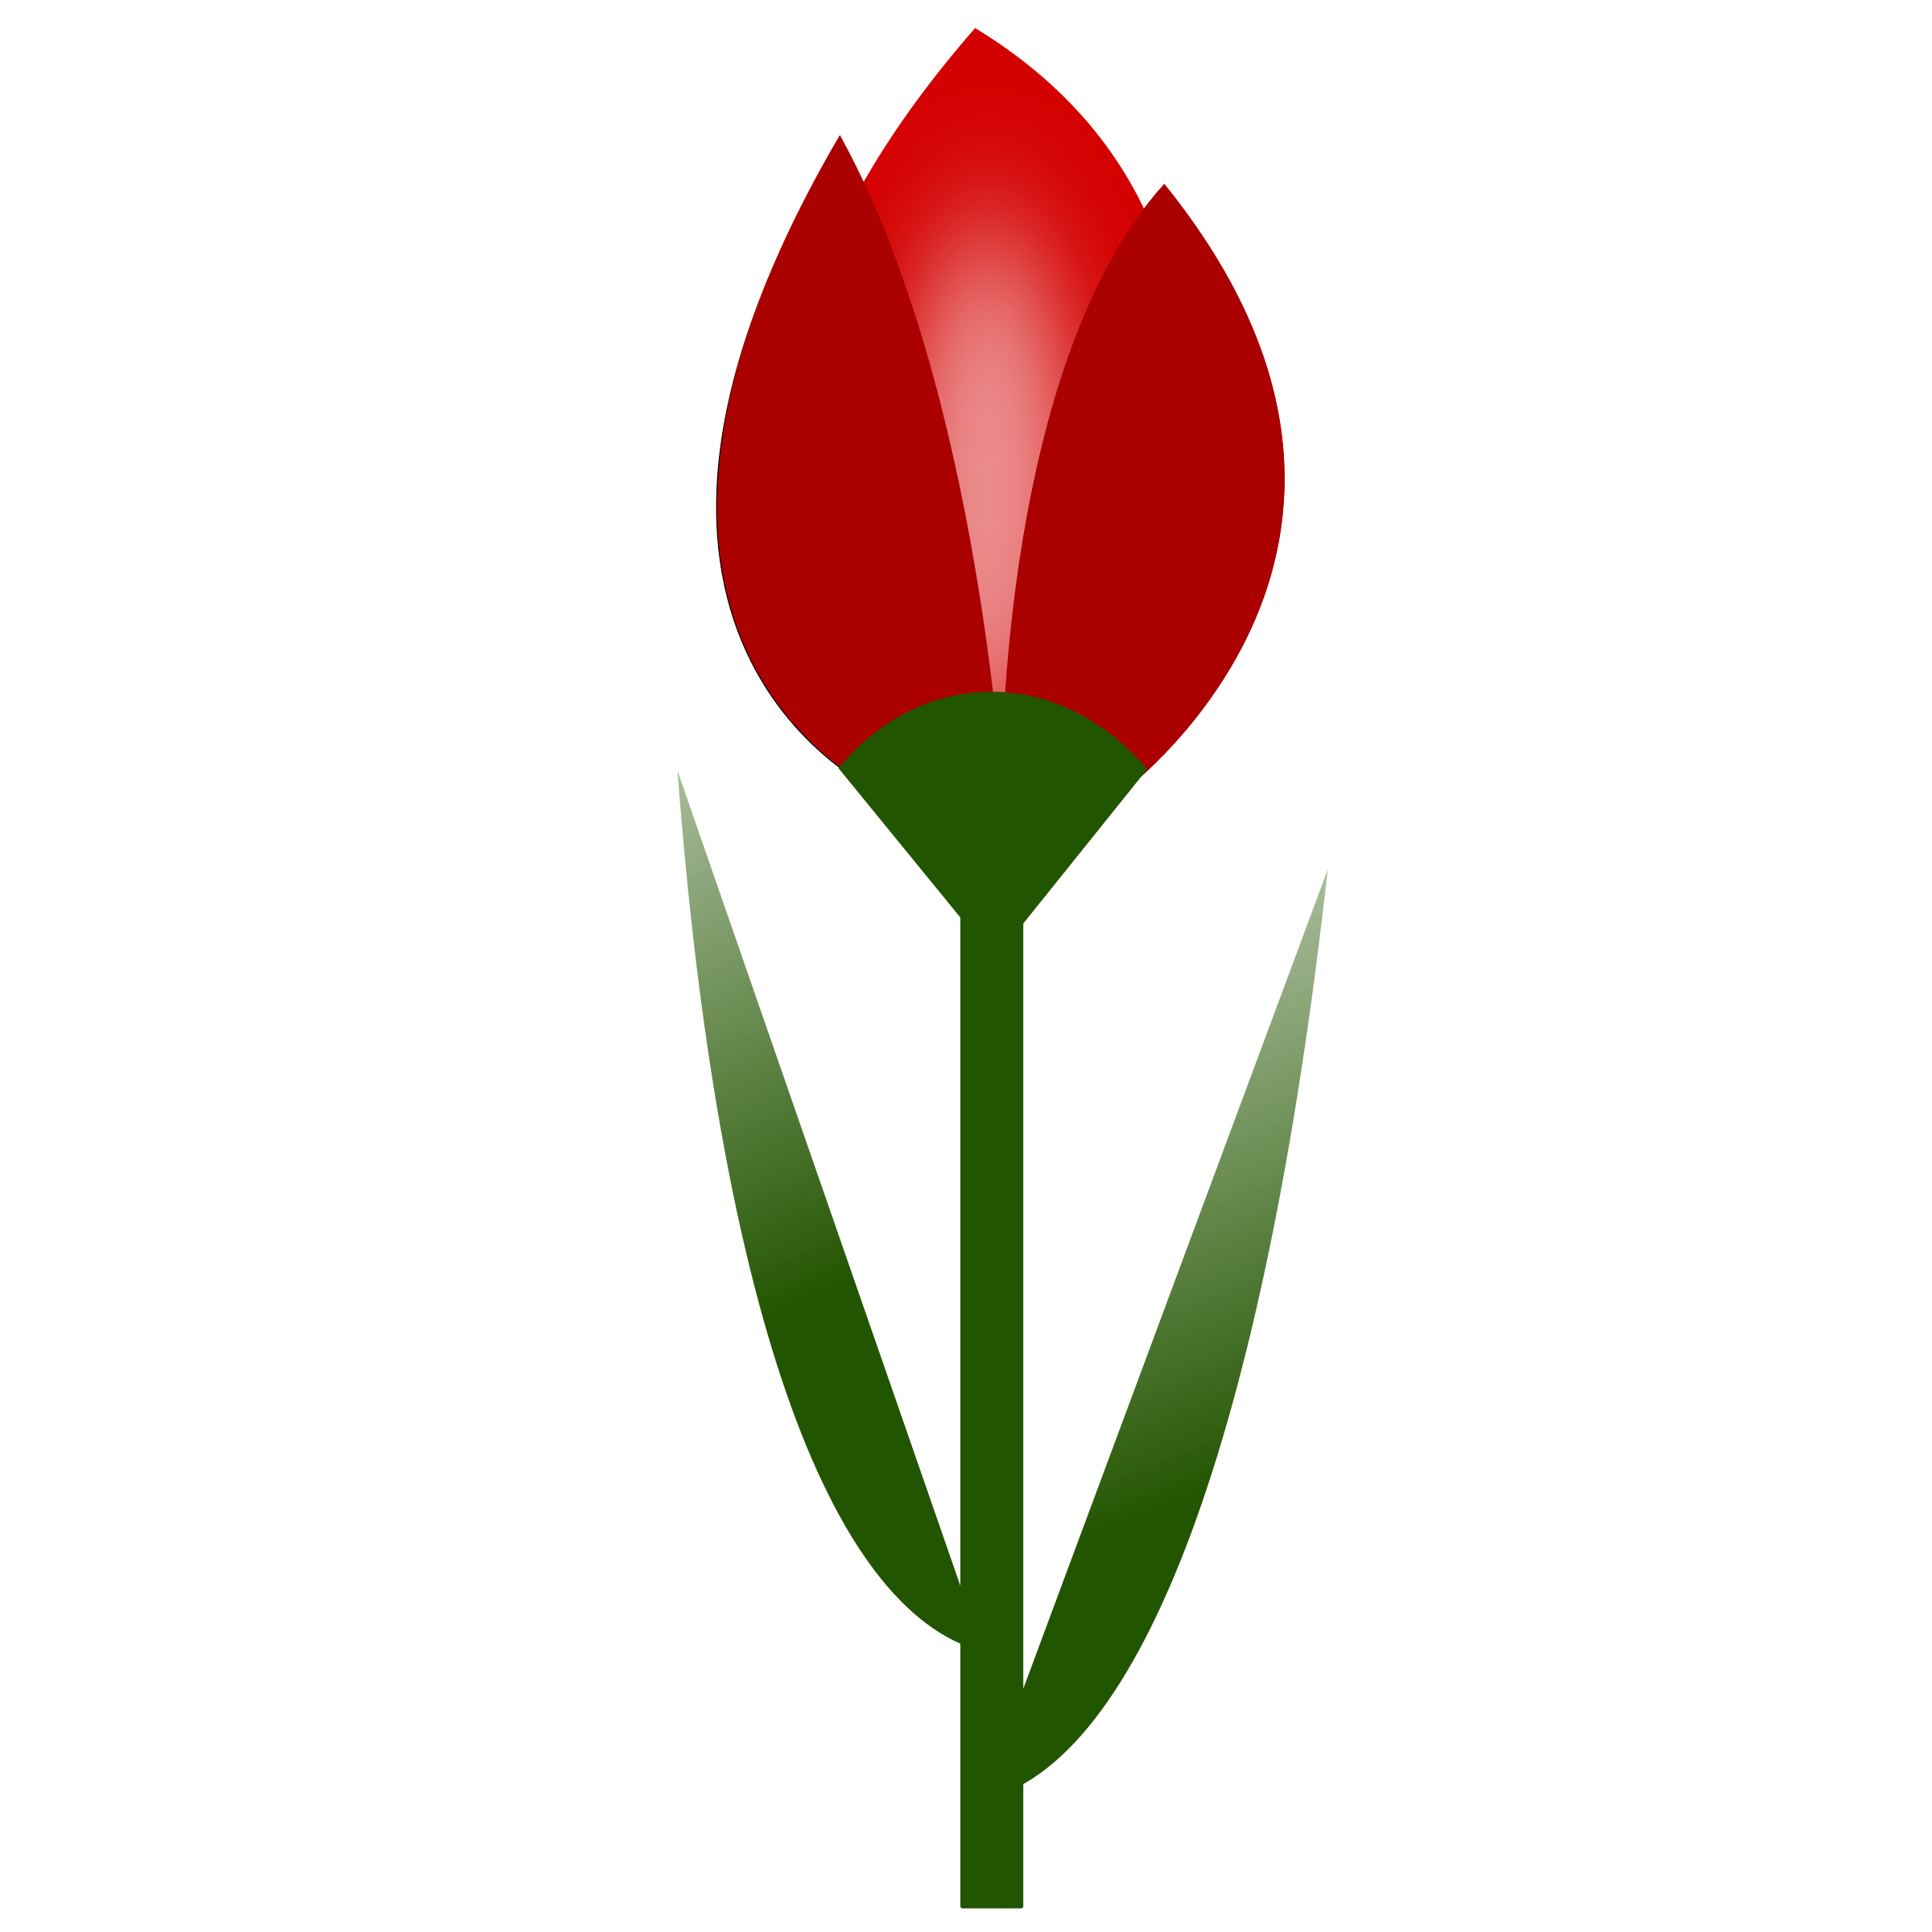 Red color png. Tulip simple flower with